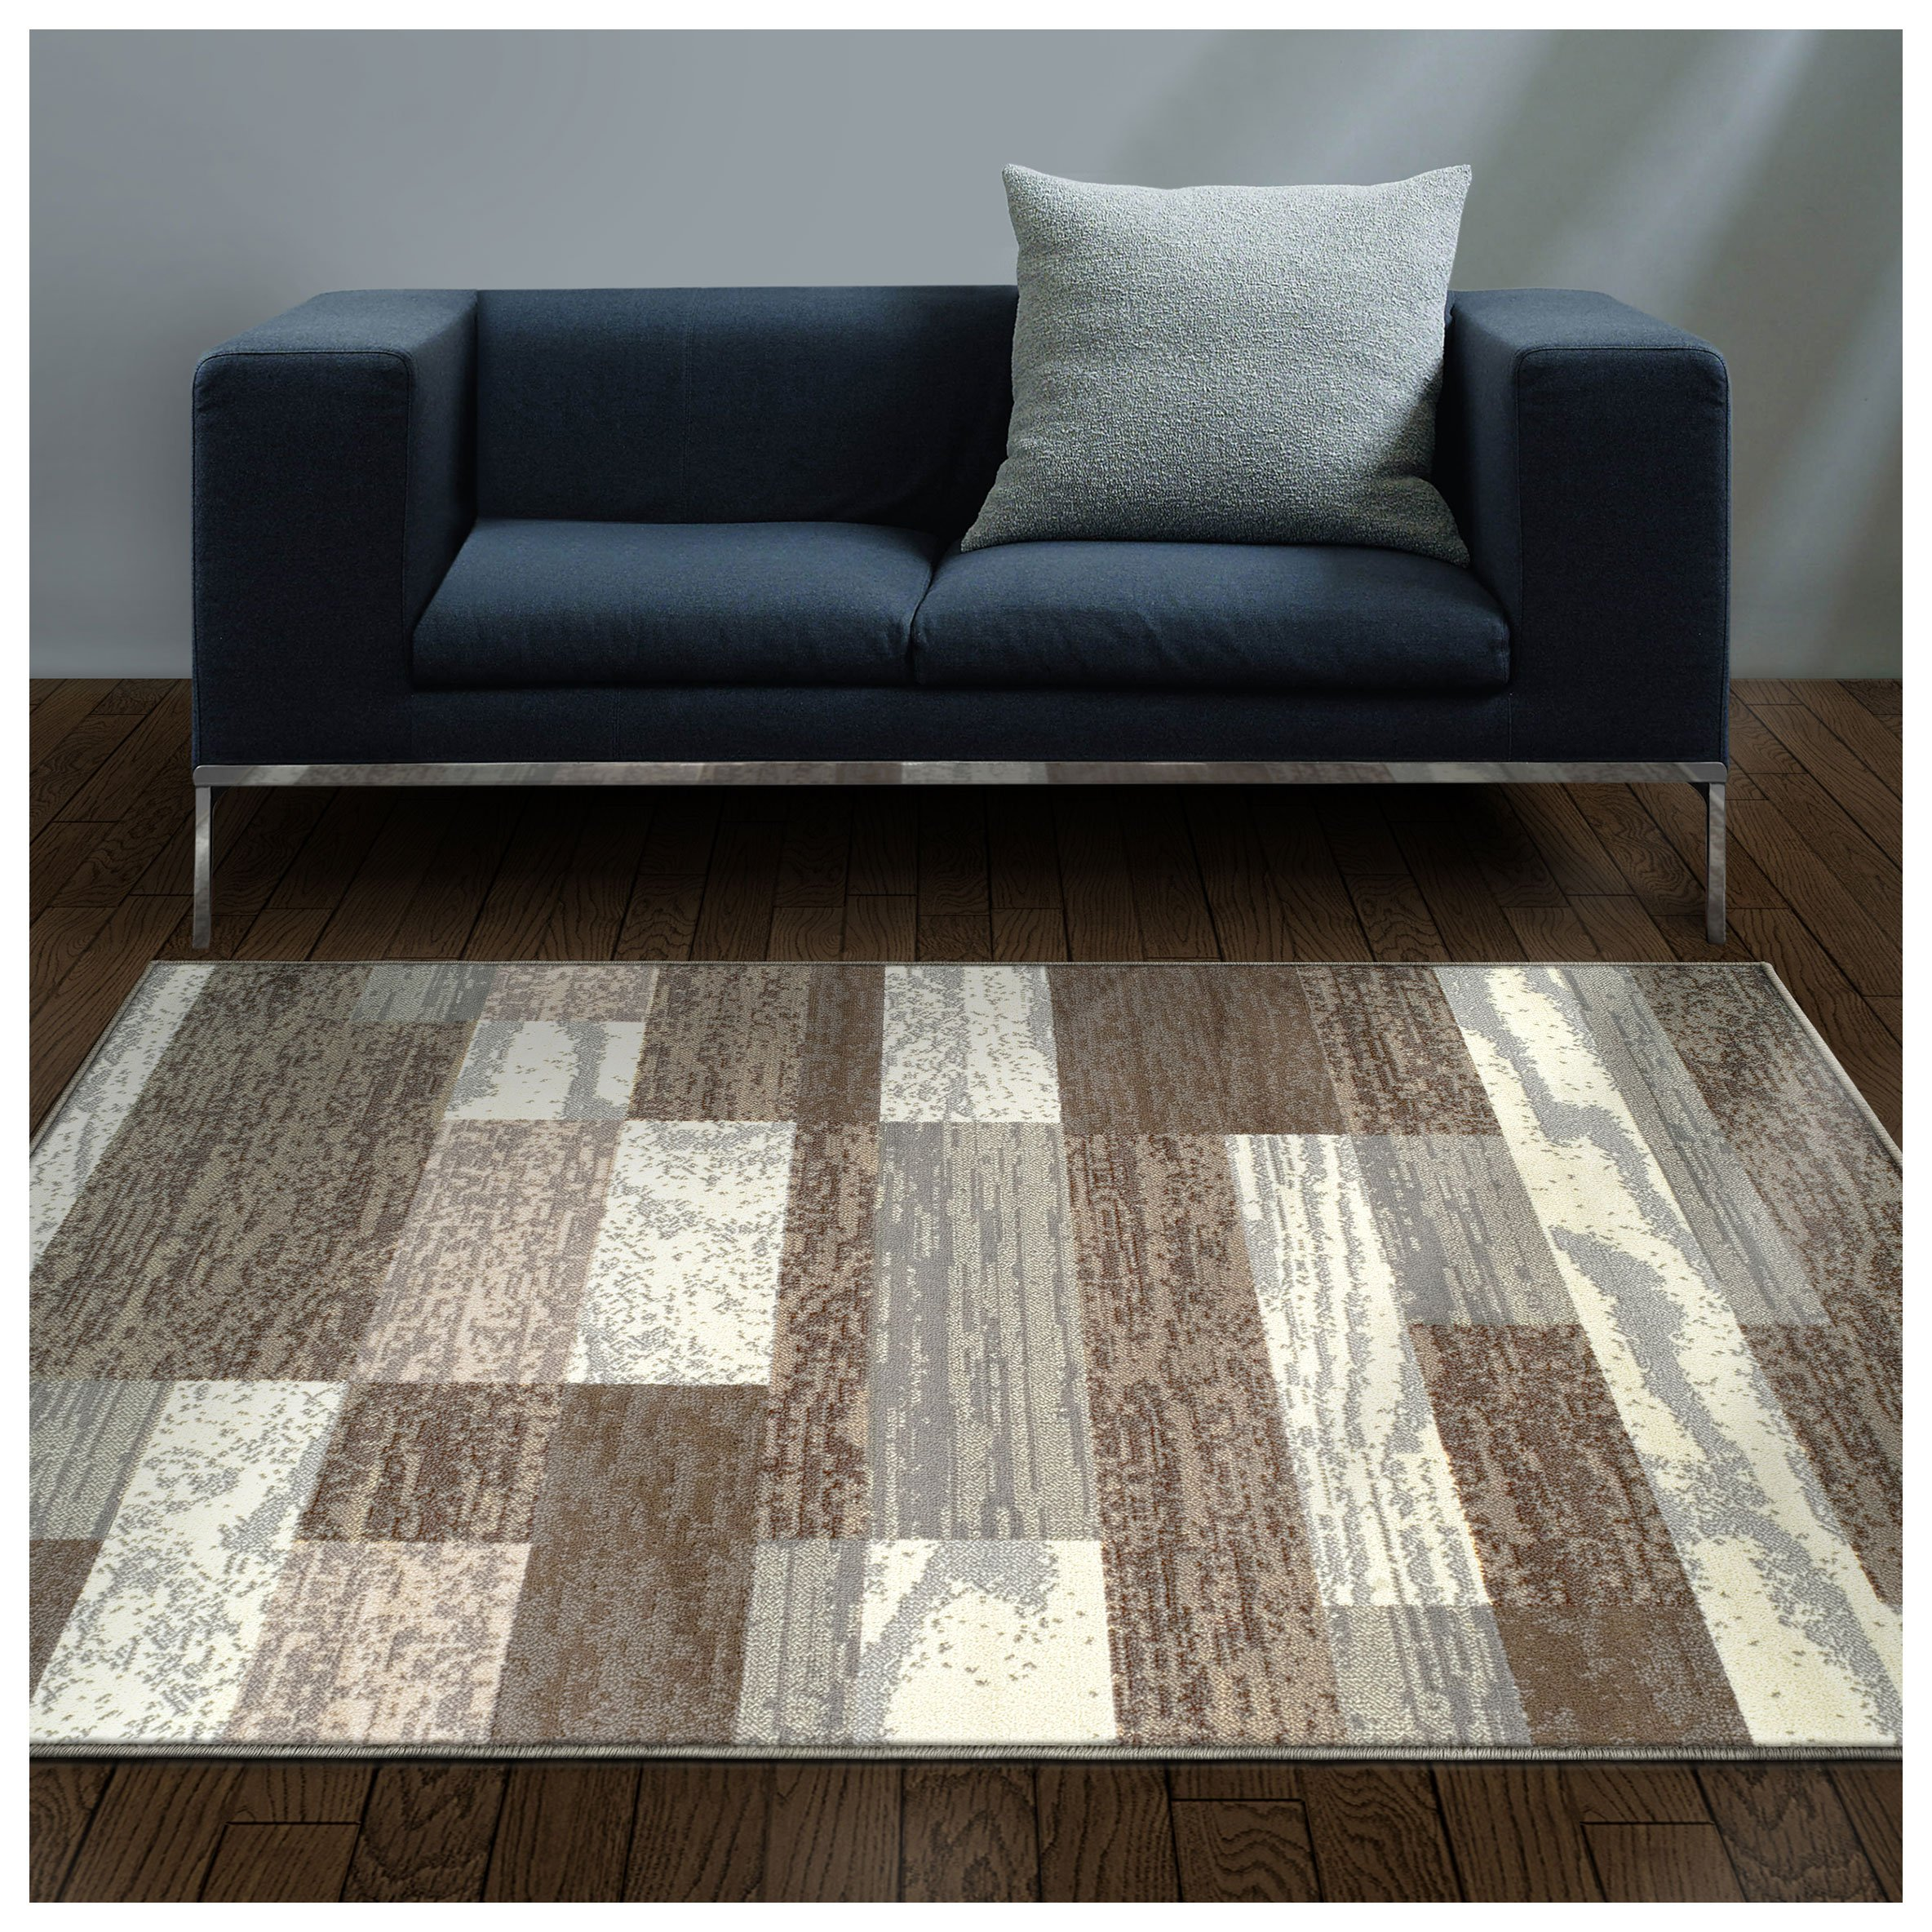 Superior Modern Rockwood Collection Area Rug, 8mm Pile Height with Jute Backing, Textured Geometric Brick Design, Anti-Static, Water-Repellent Rugs - Light Blue & Ivory, 4' x 6' Rug